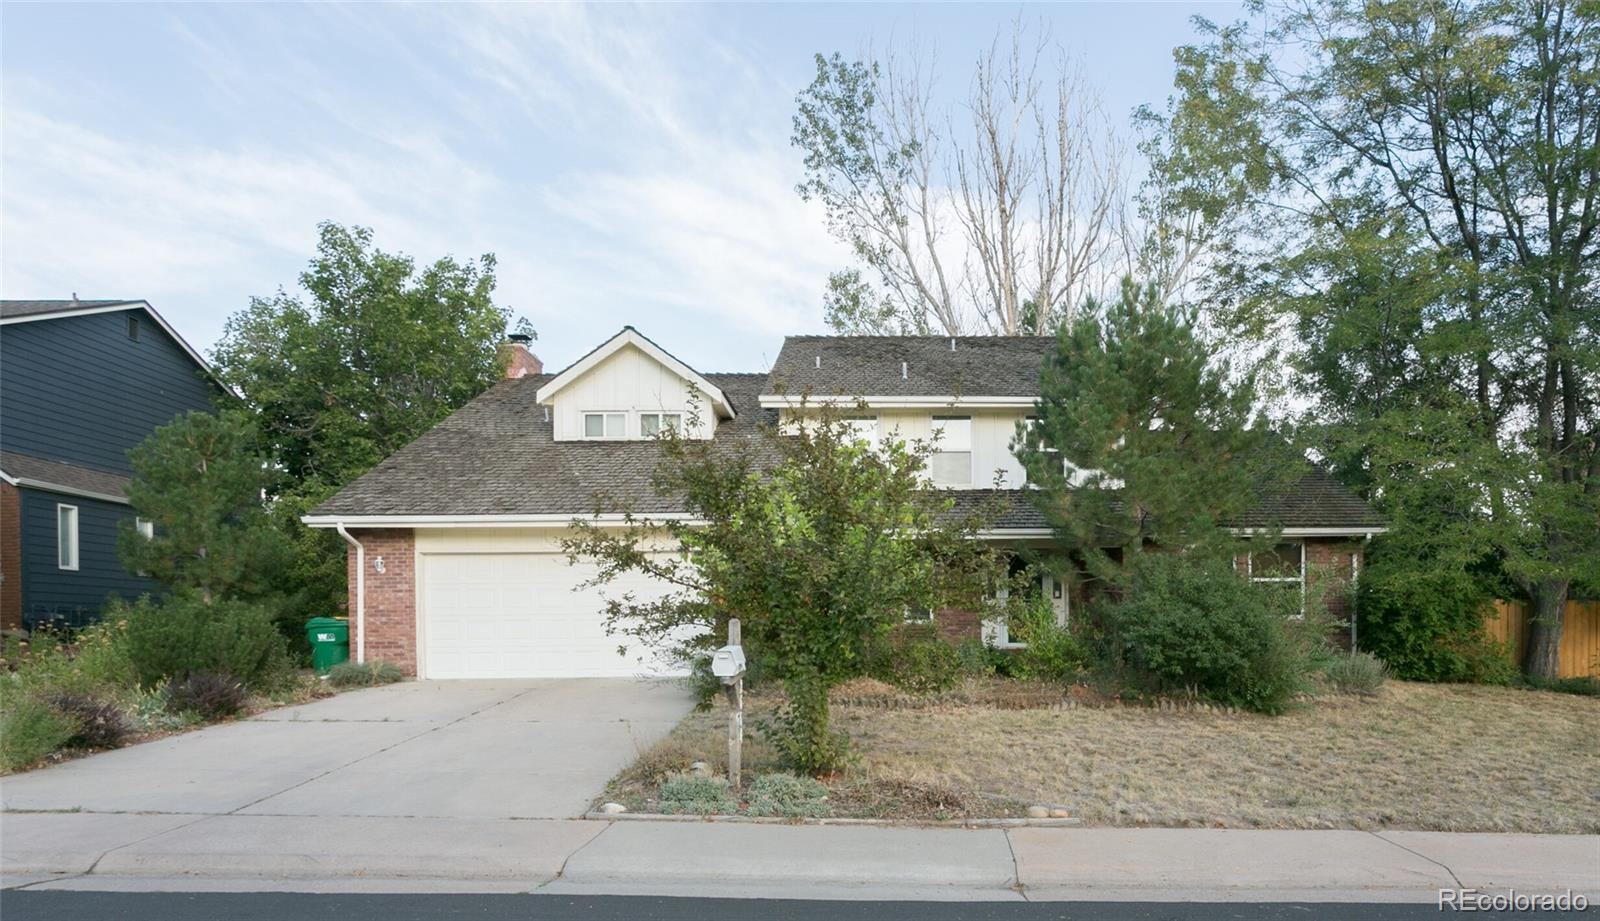 """Interested in adding your finishing touches, but hate the first part of a remodel?! This home is for you! With a large home and lot, including larger bedrooms and a basement, this gem has a lot of potential. Sellers began a remodel but moved out of state for a job change. Painting is mostly done, floors are showing floorboards in some areas. Tremendous curb appeal with immaculate landscaping that's been neglected, but ready for your love! Inside, vaulted ceilings and natural light make the large spaces seem even larger. Spacious kitchen has tile counters, tile back splash, custom cabinetry and all appliances. Living room fireplace provides cozy retreat on cold days. Upstairs, four bedrooms can be used as is or become office or other space. Master suite is over sized (yes, it'll fit your king bed AND furniture!) with a large walk-in closet and private five-piece bathroom. Basement offers even more space, which could be finished to add more value with office space, flex space, personal gym or even additional bedroom. Double-sized lot (1/3 acre!) offers large backyard with full fence (replaced in 2017). Former owner (prior to present seller) was professional landscaper and garden boxes are present, but need love. Sprinkler system is also present, but heads need repaired / replaced. From former owner: """"landscaping includes fruit apple, apricot, cherry and plum trees; grape arbor; raspberries; blackberries; red bud tree; spring snow crabs; flowering pear; Vanderwolf pines; Japanese maples"""". The garden and home are yours to discover! Extended two-car garage has enough space for storage and shelving, or workbench. Close to public transportation, highways, DTC and shopping."""